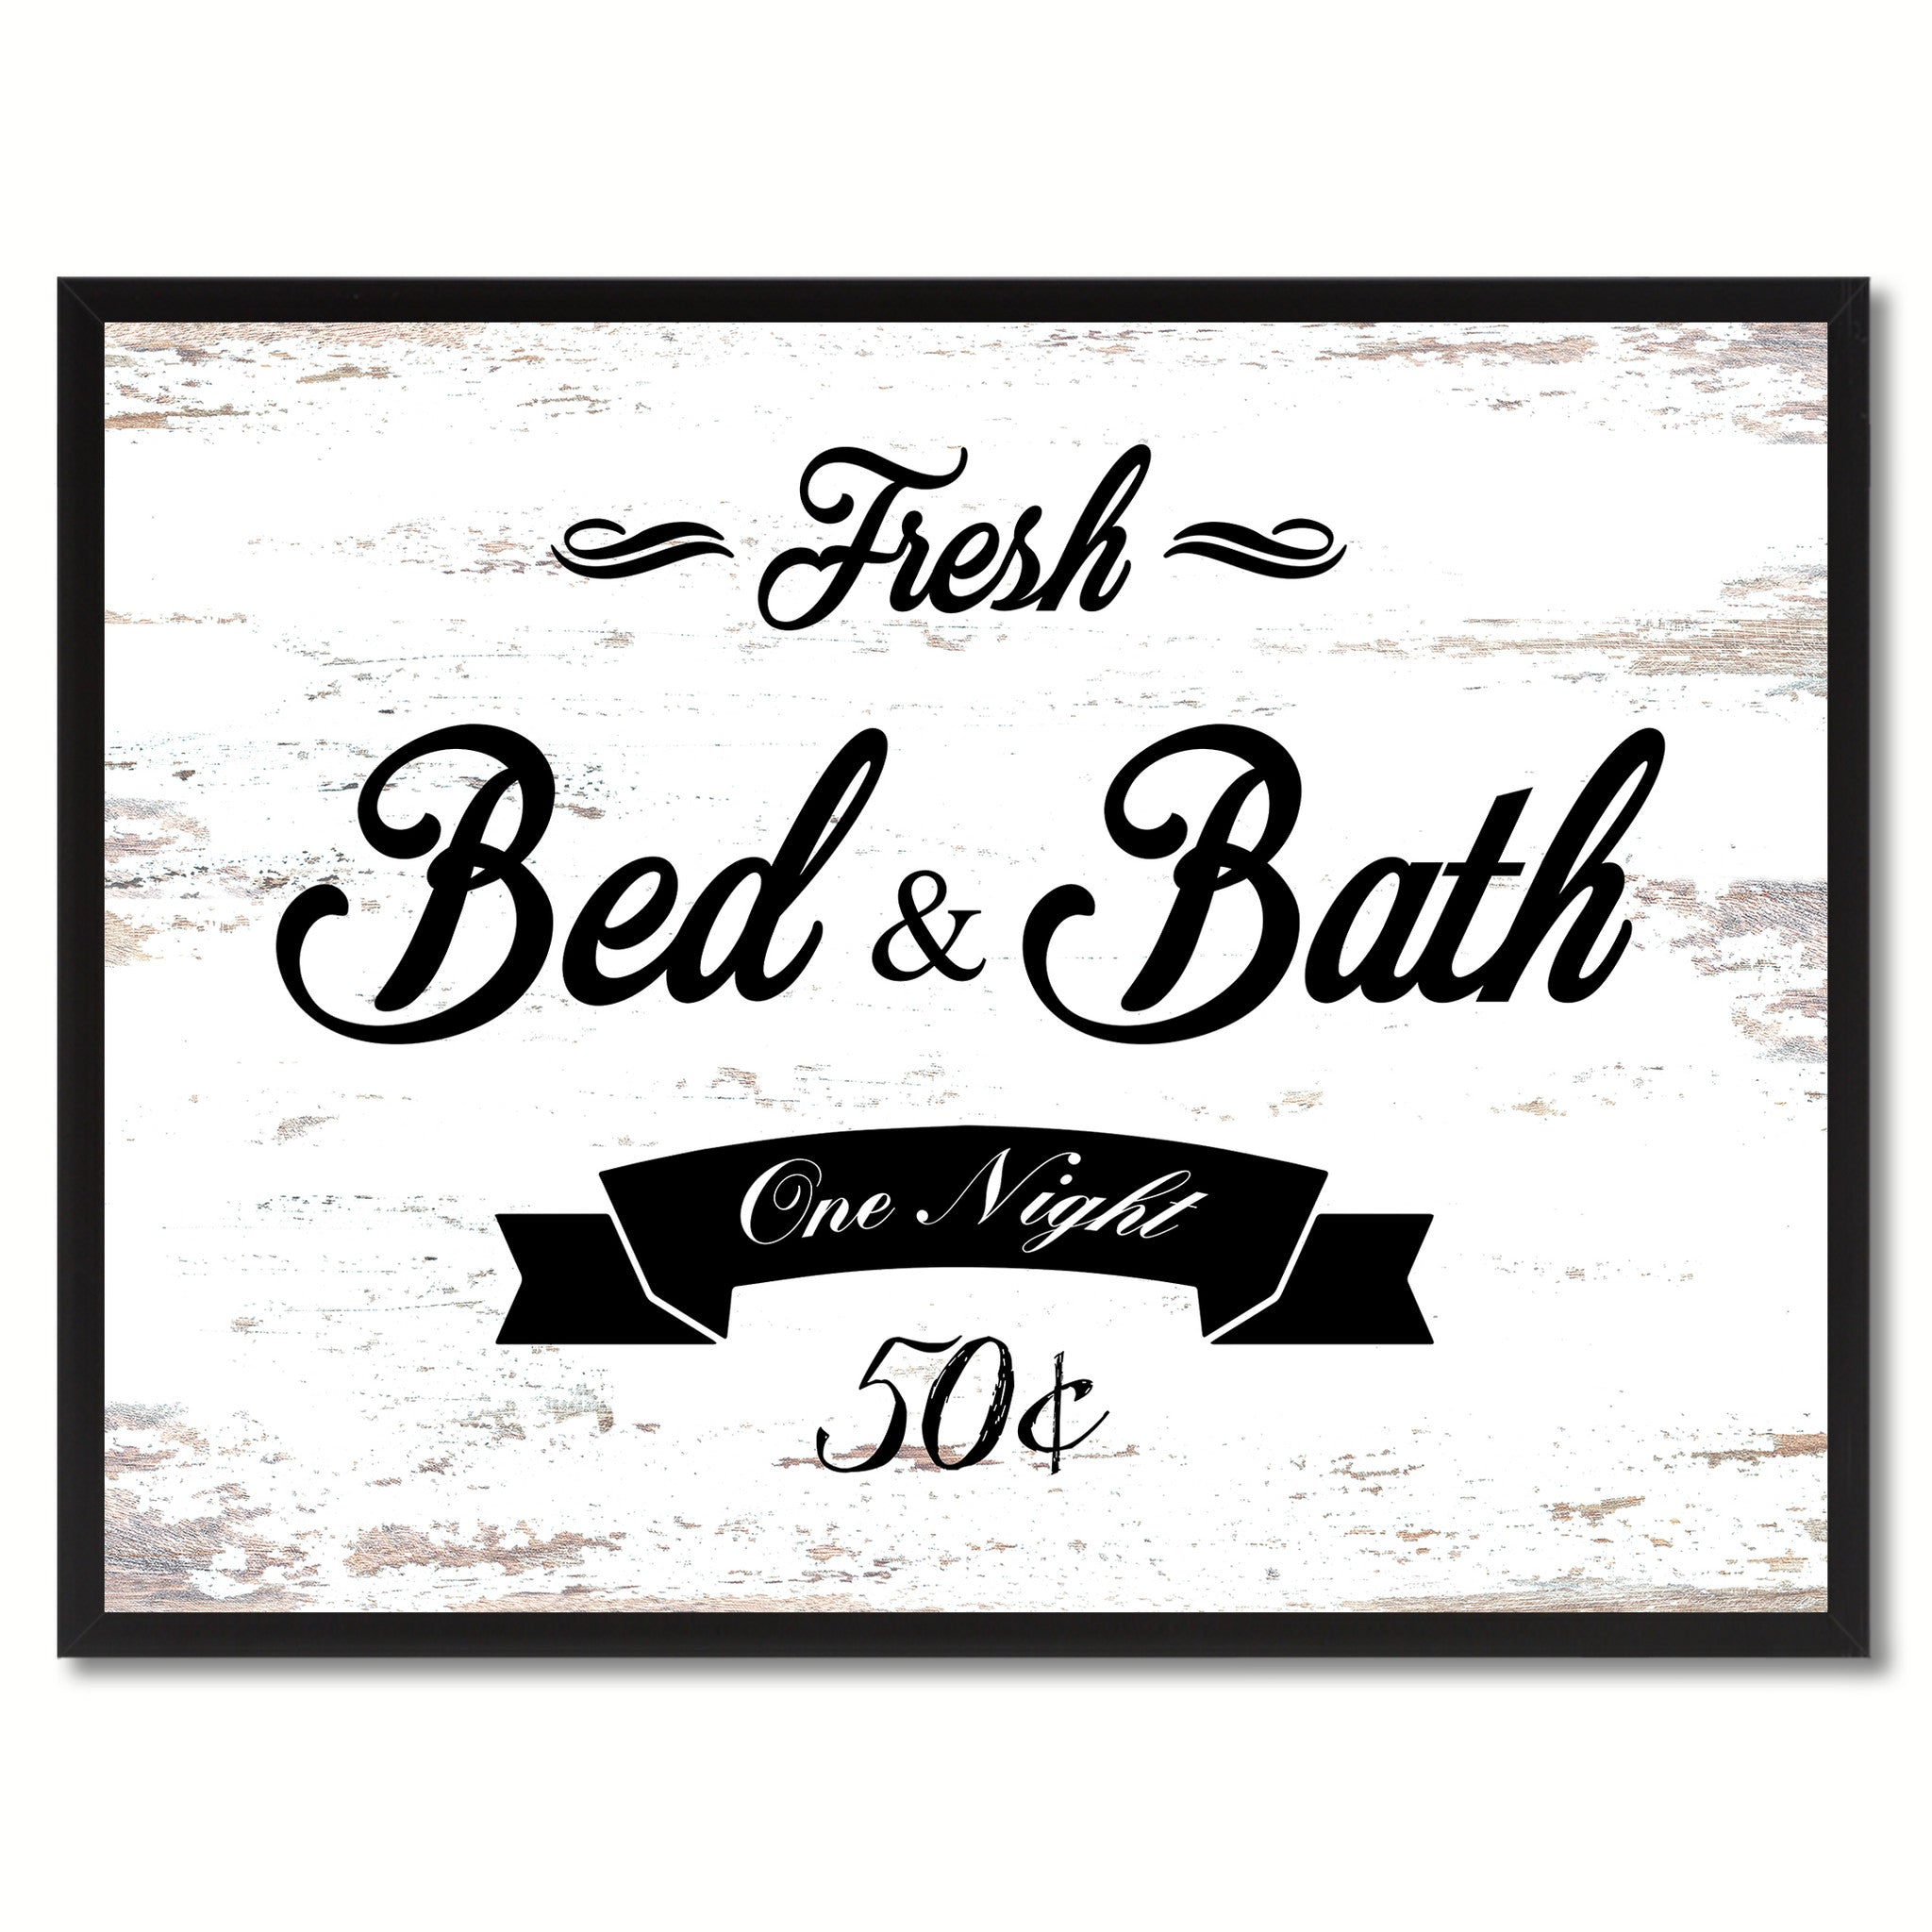 Fresh Bed & Bath Vintage Sign White Canvas Print Home Decor Wall Art Gifts Picture Frames